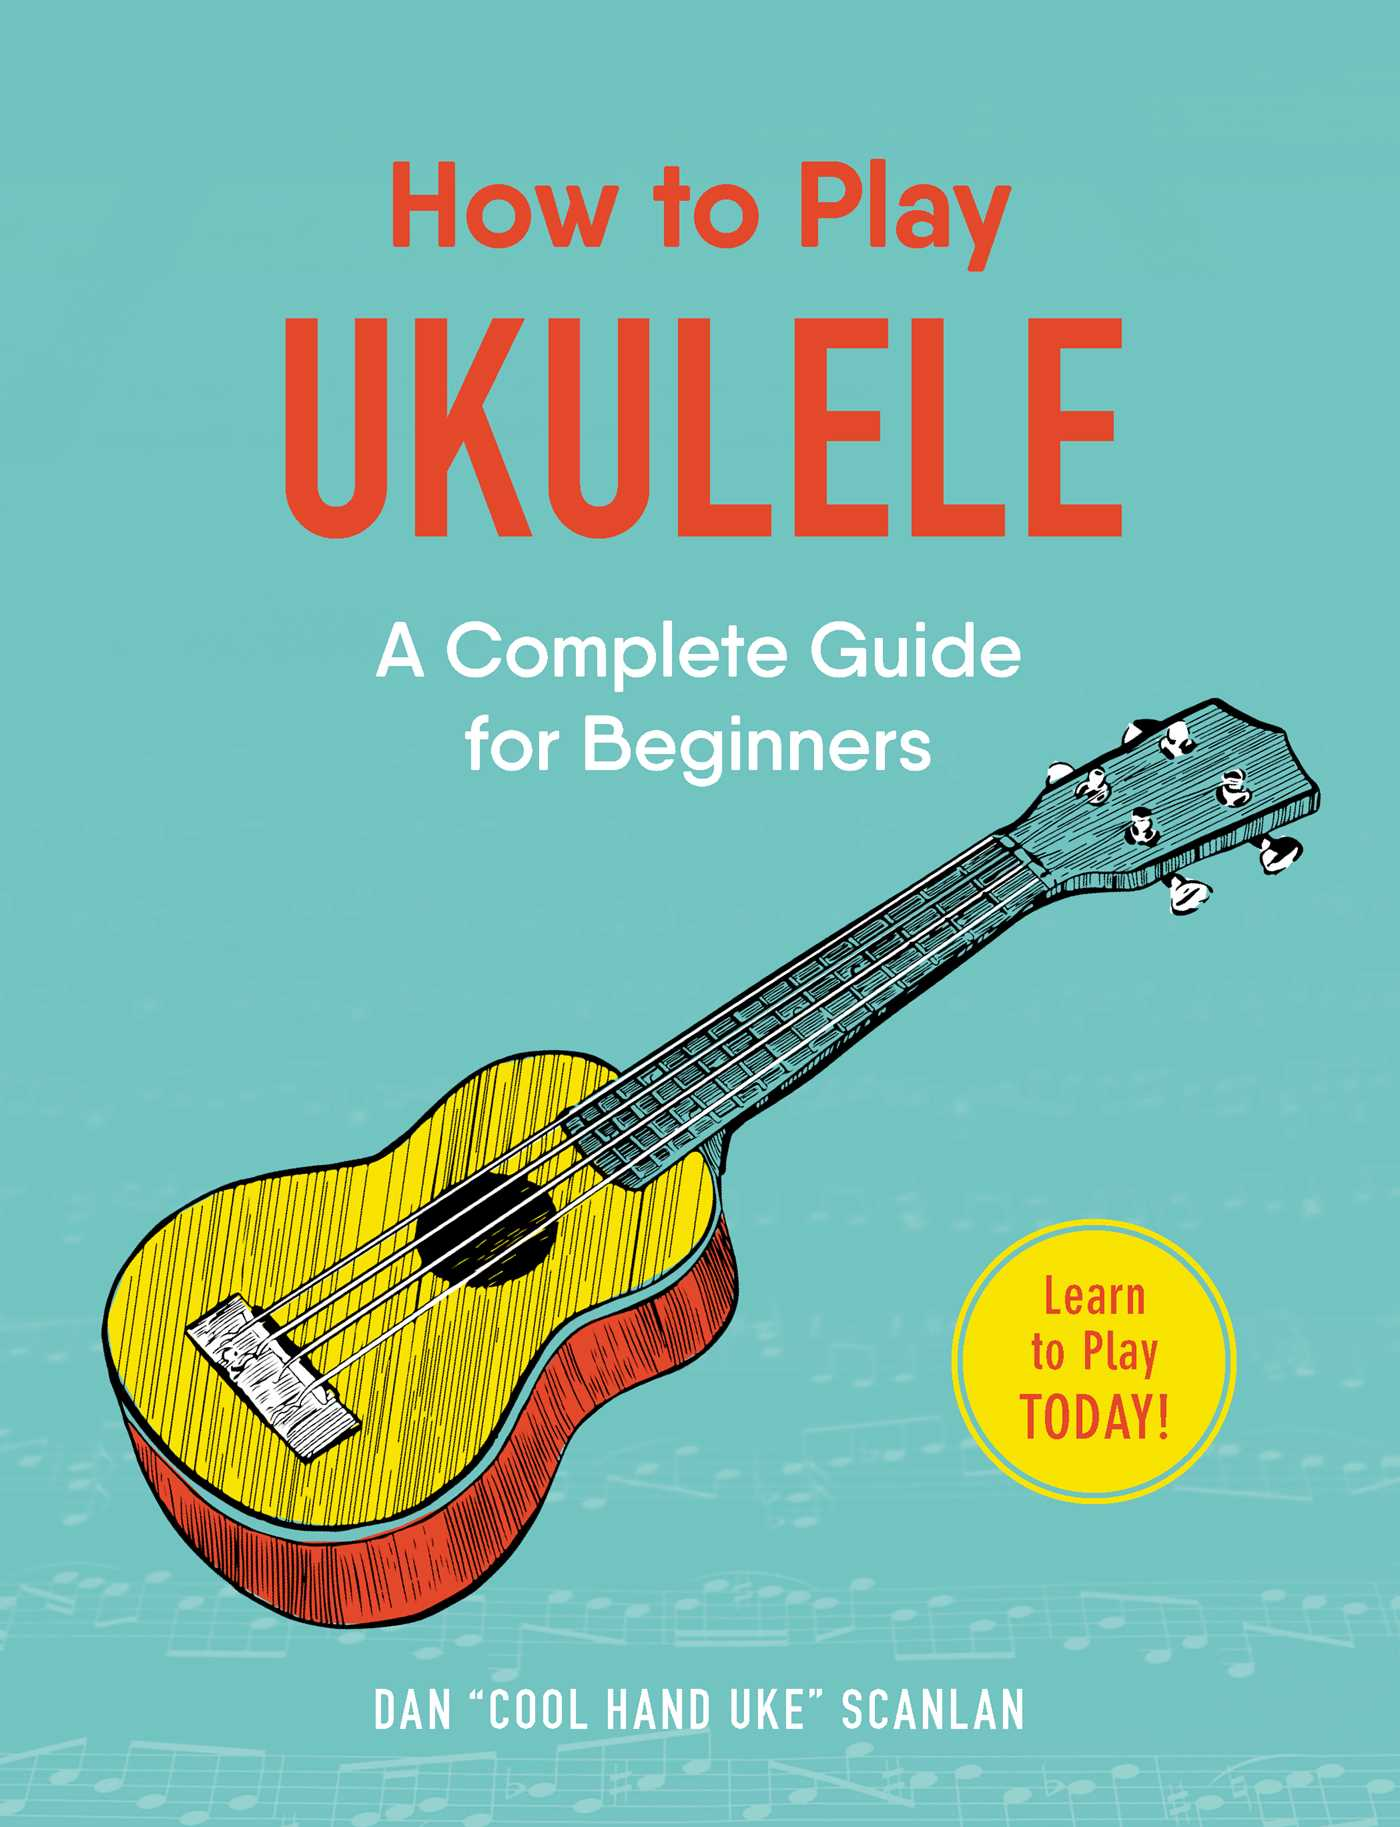 How to play ukulele 9781507207505 hr